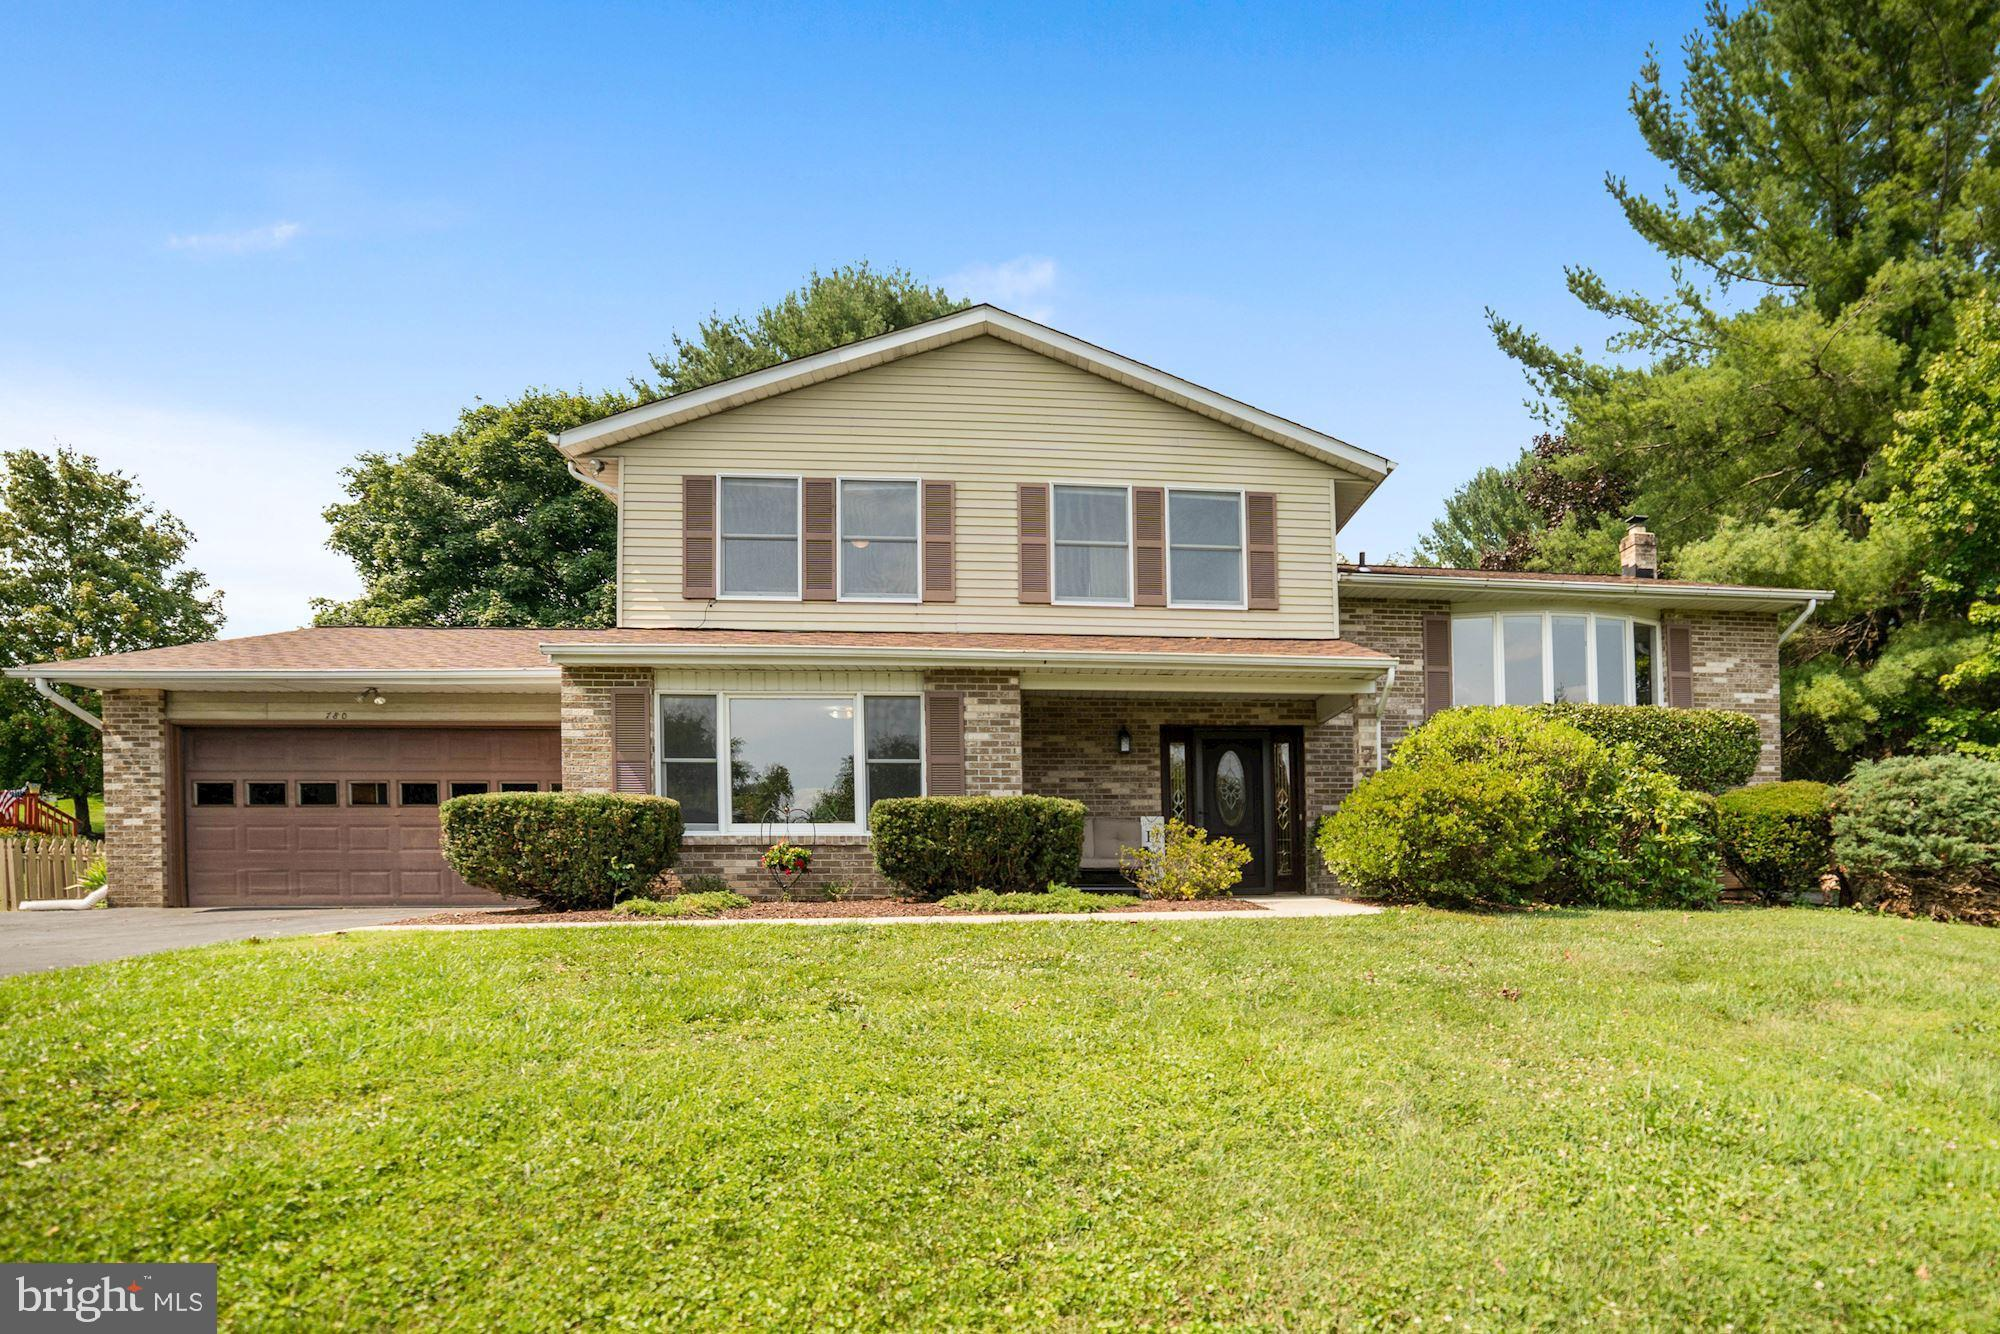 Welcome Home to this Spacious 3-4 Bedroom , 2.5 bath, split level home in a sought after neighborhoo